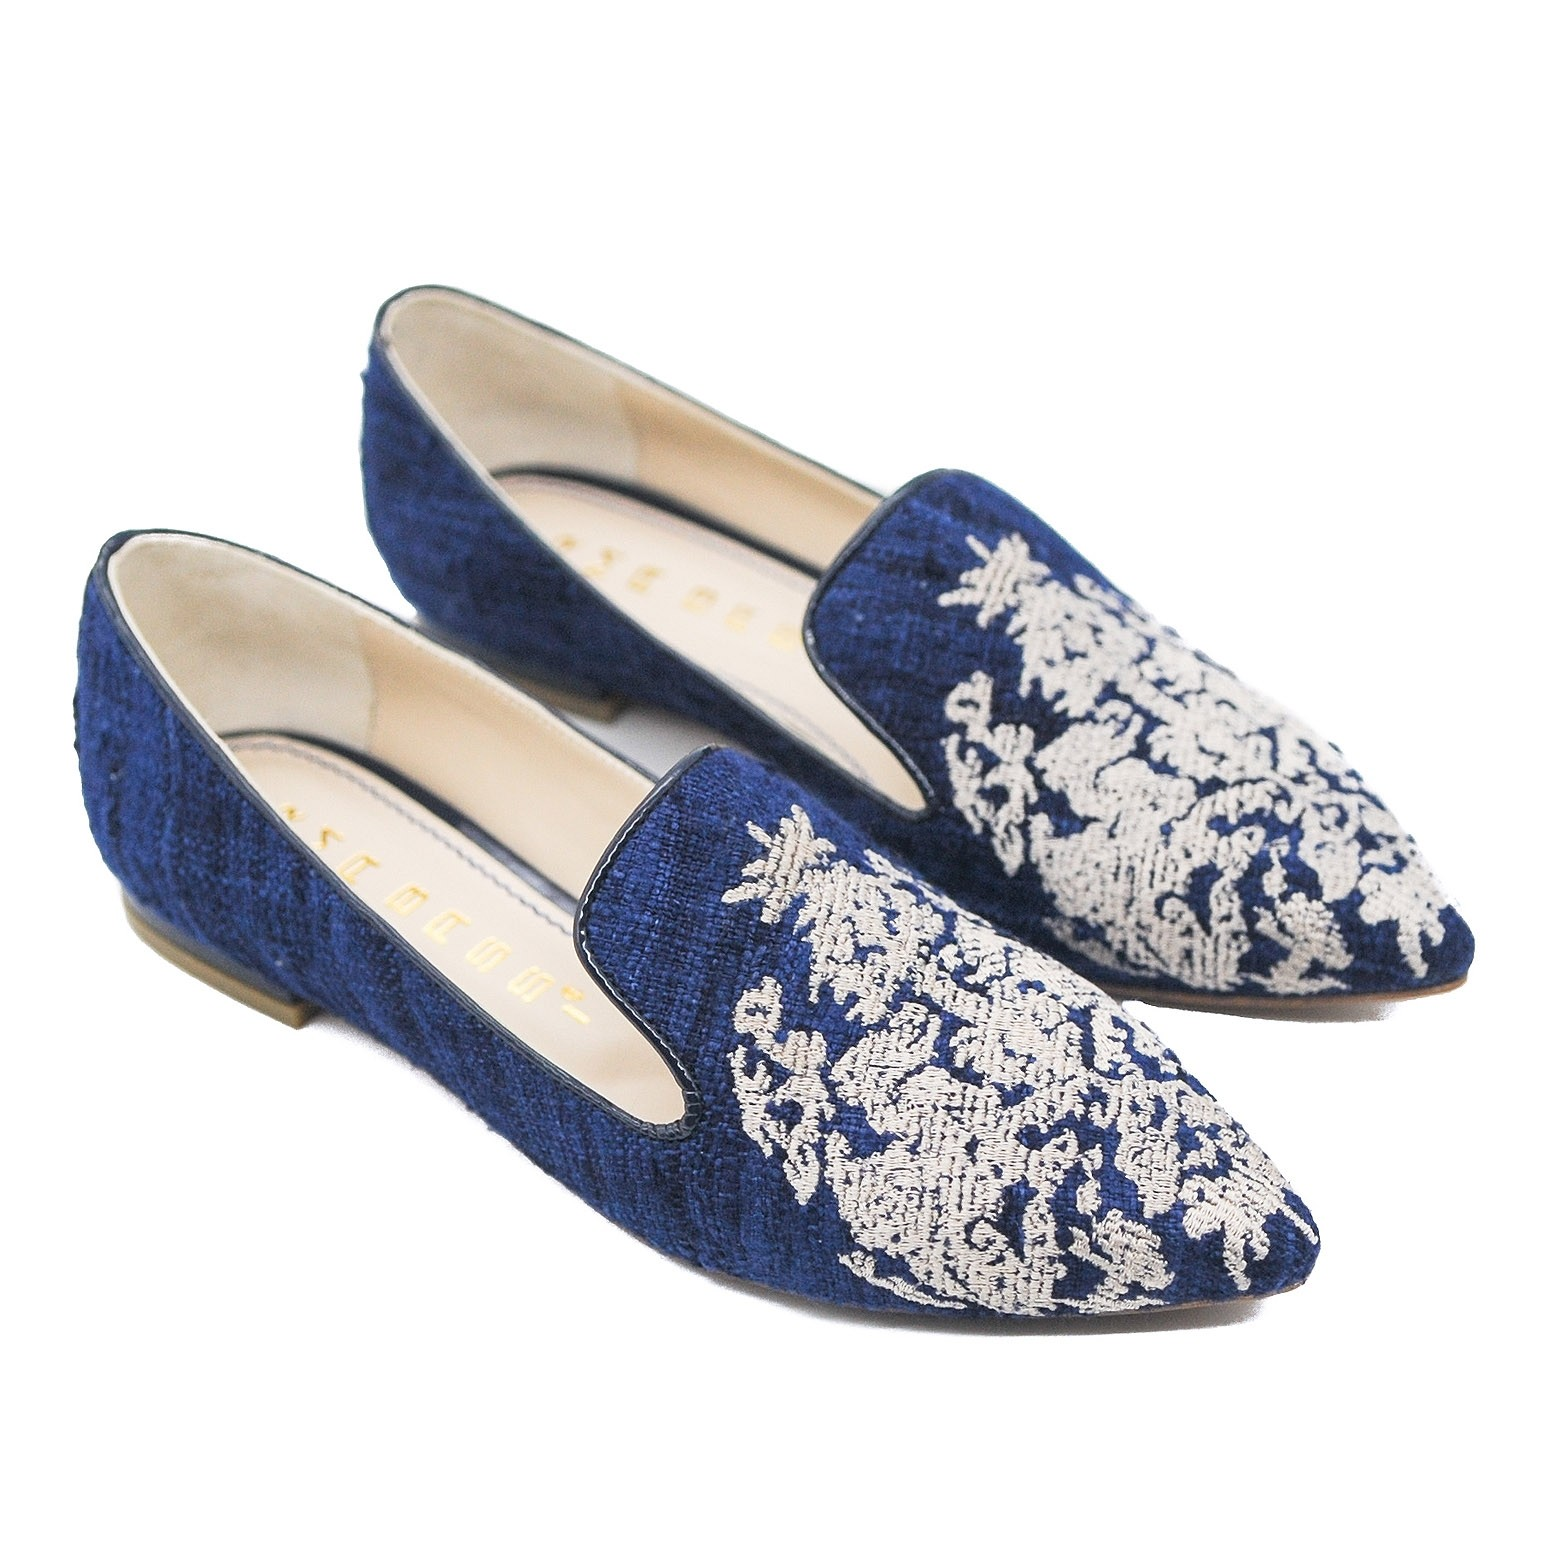 Goody2Shoes Ladies' Navy Blue Flat Pumps with Cream Embroidered Toe Detail